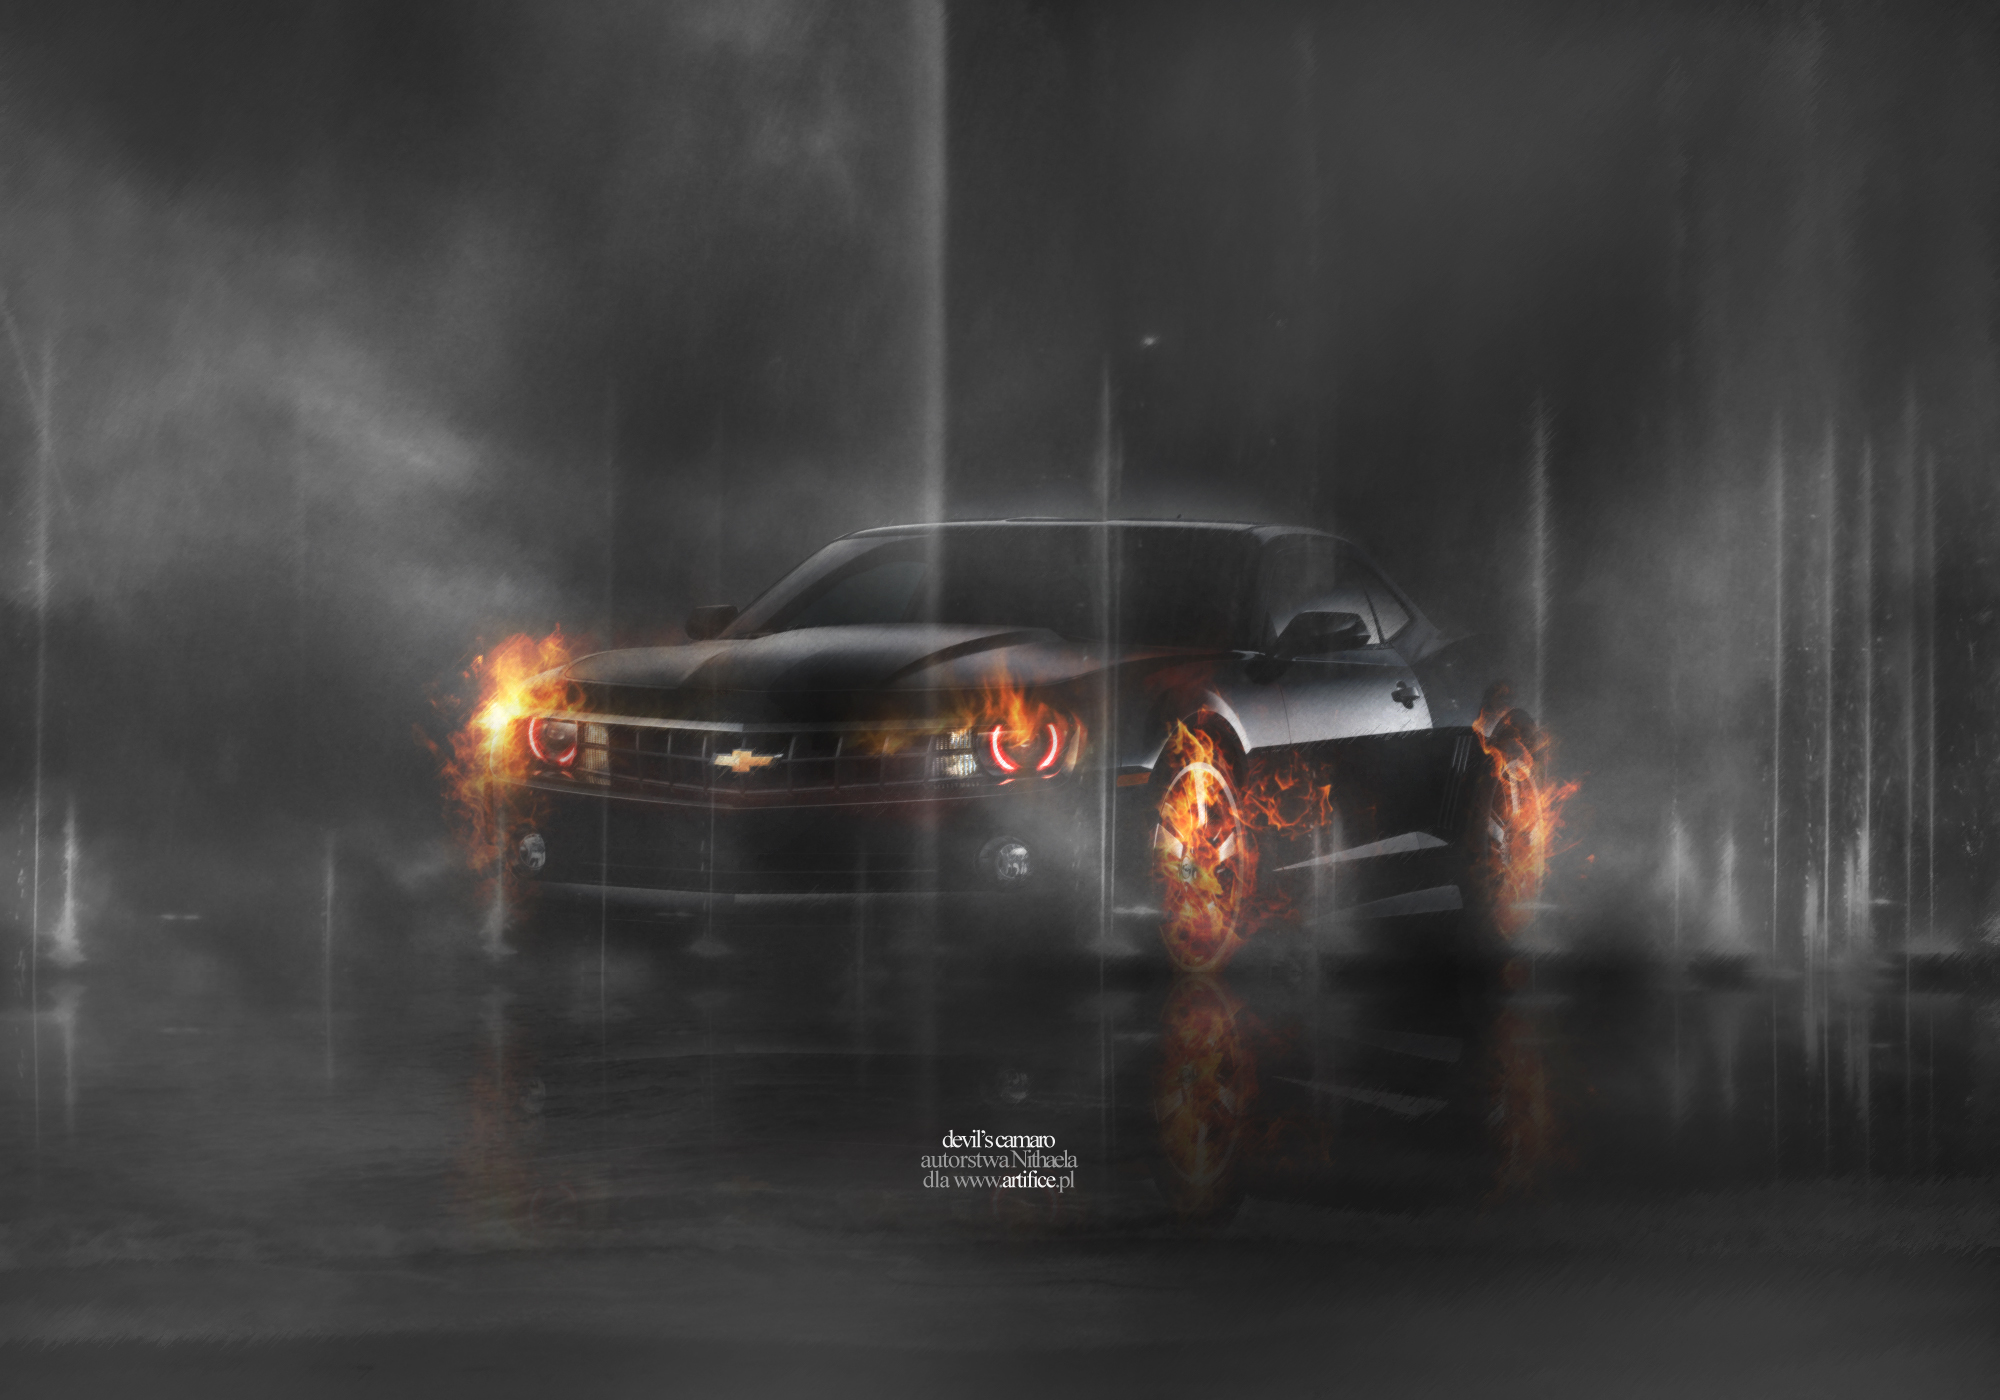 digital camaro art   camaroz28